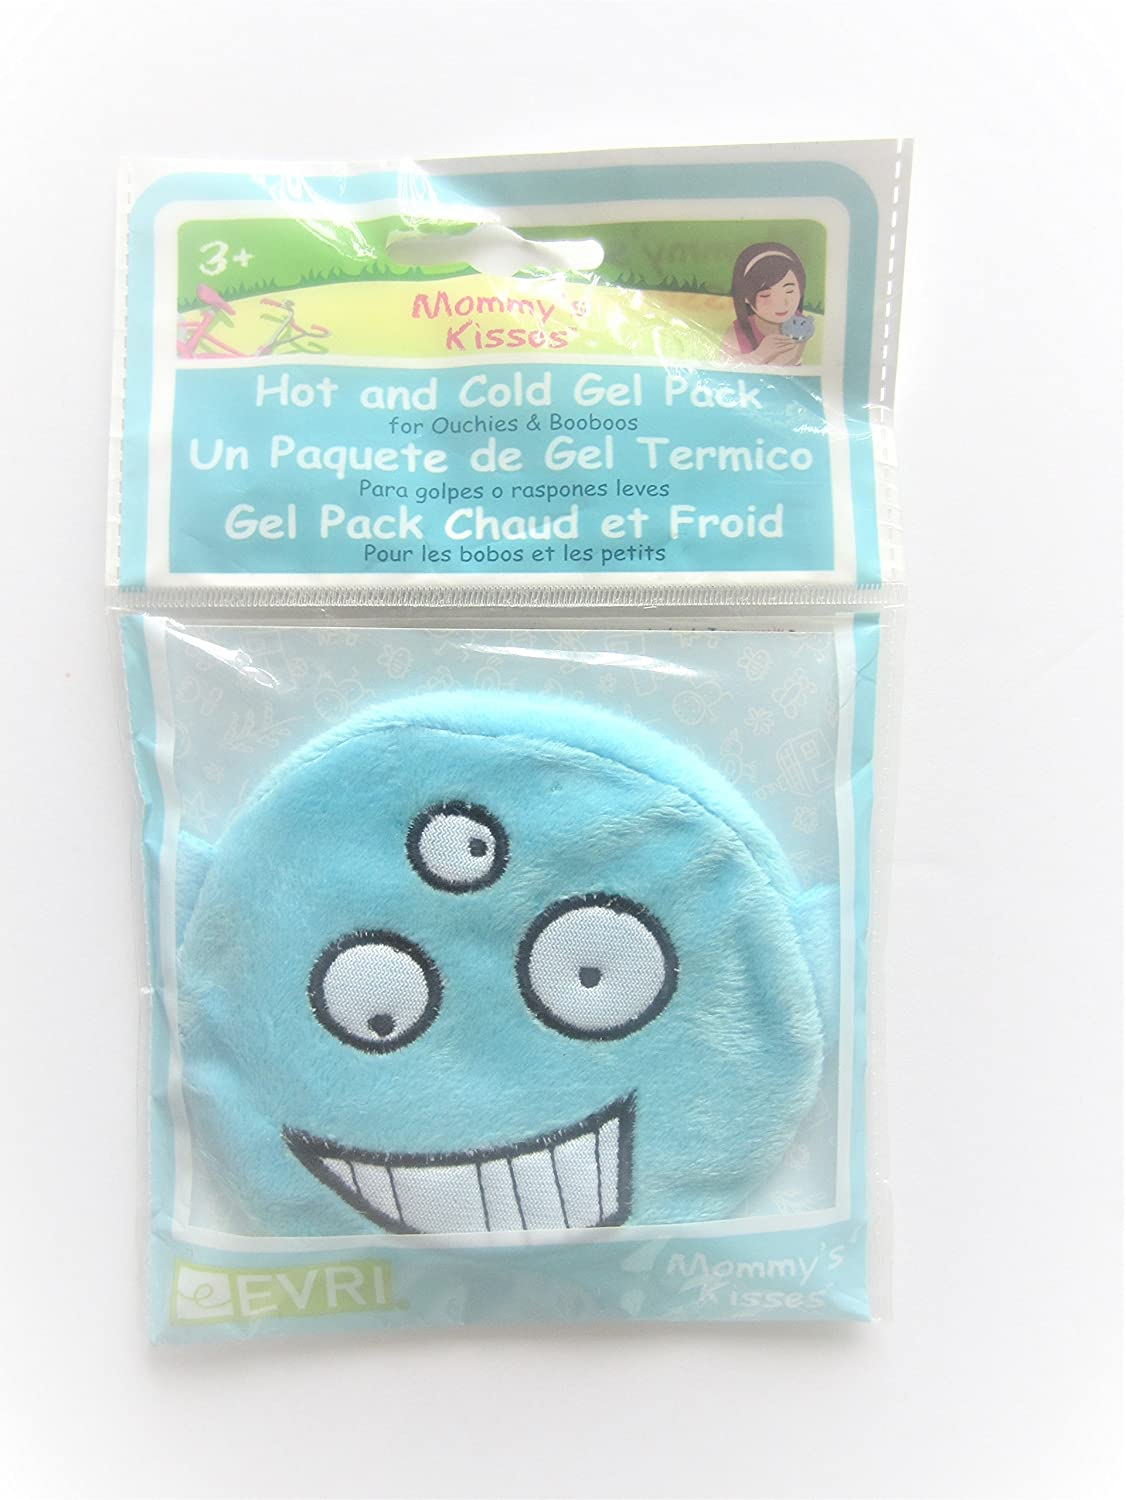 Amazon.com : Mommys Kisses Spa Comforts, Reusable Childrens Hot and Cold Pack - Blue Monster : Sports & Outdoors